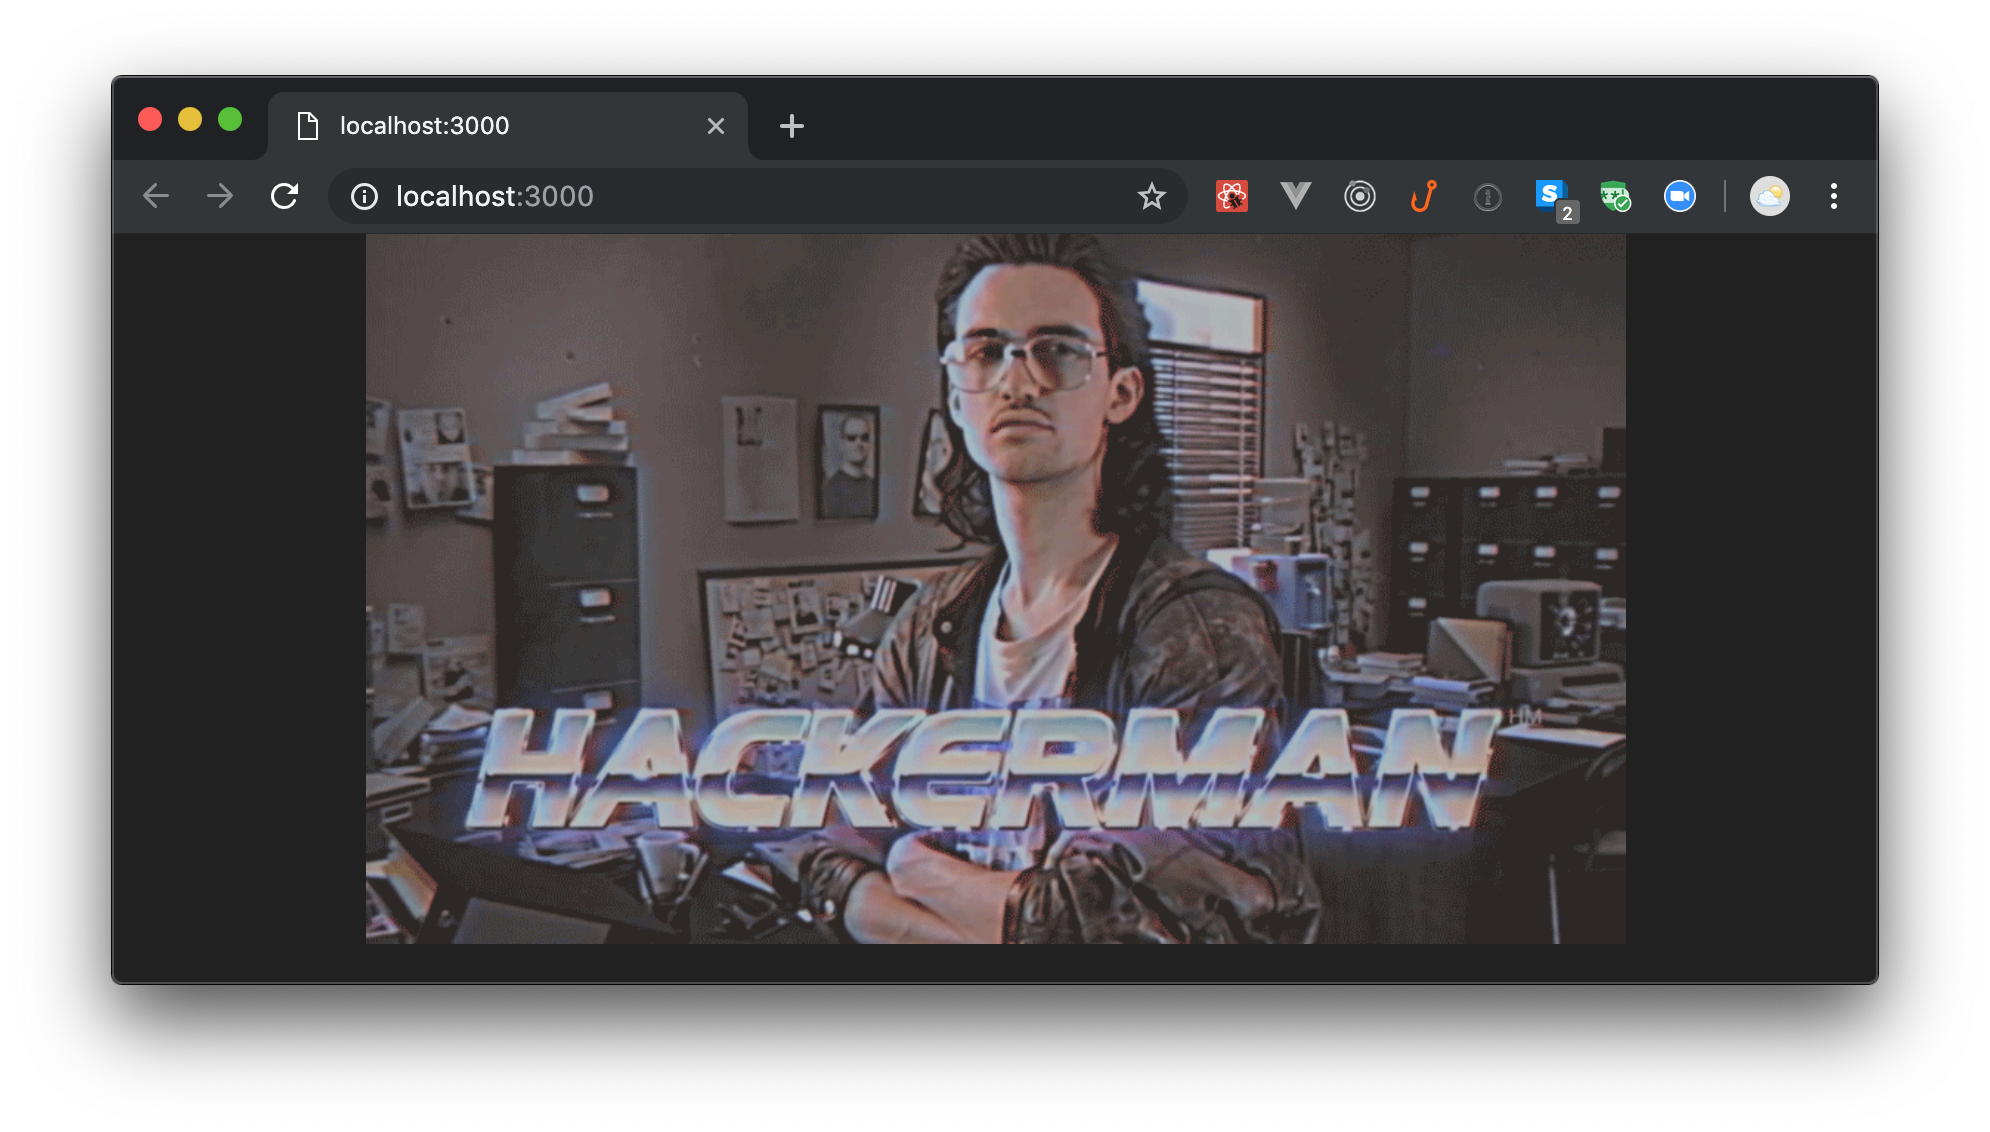 Hackerman image - Scaffolding a Next.js application.